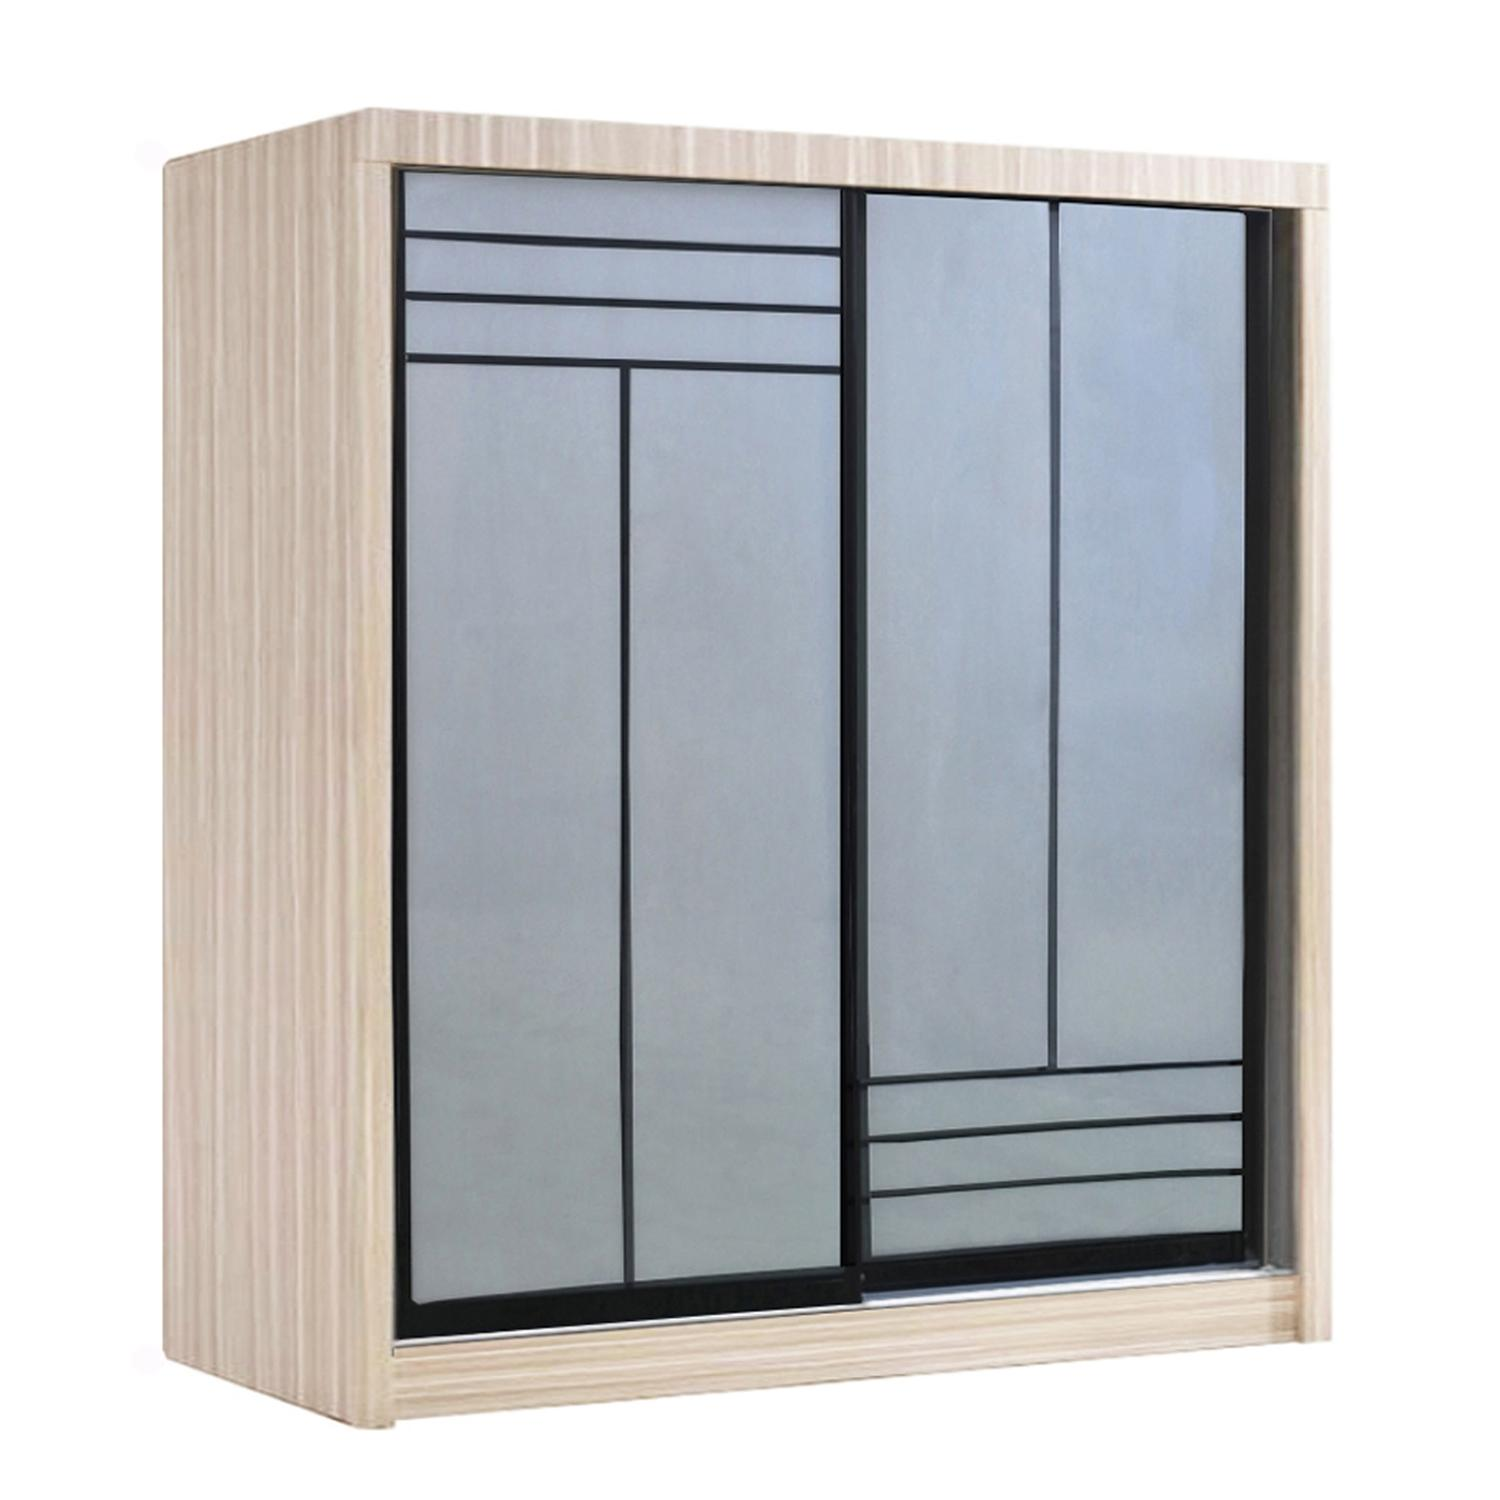 LIVING MALL_Kenzo Sliding Wardrobe_5 FT Sliding Wardrobe_FREE DELIVERY